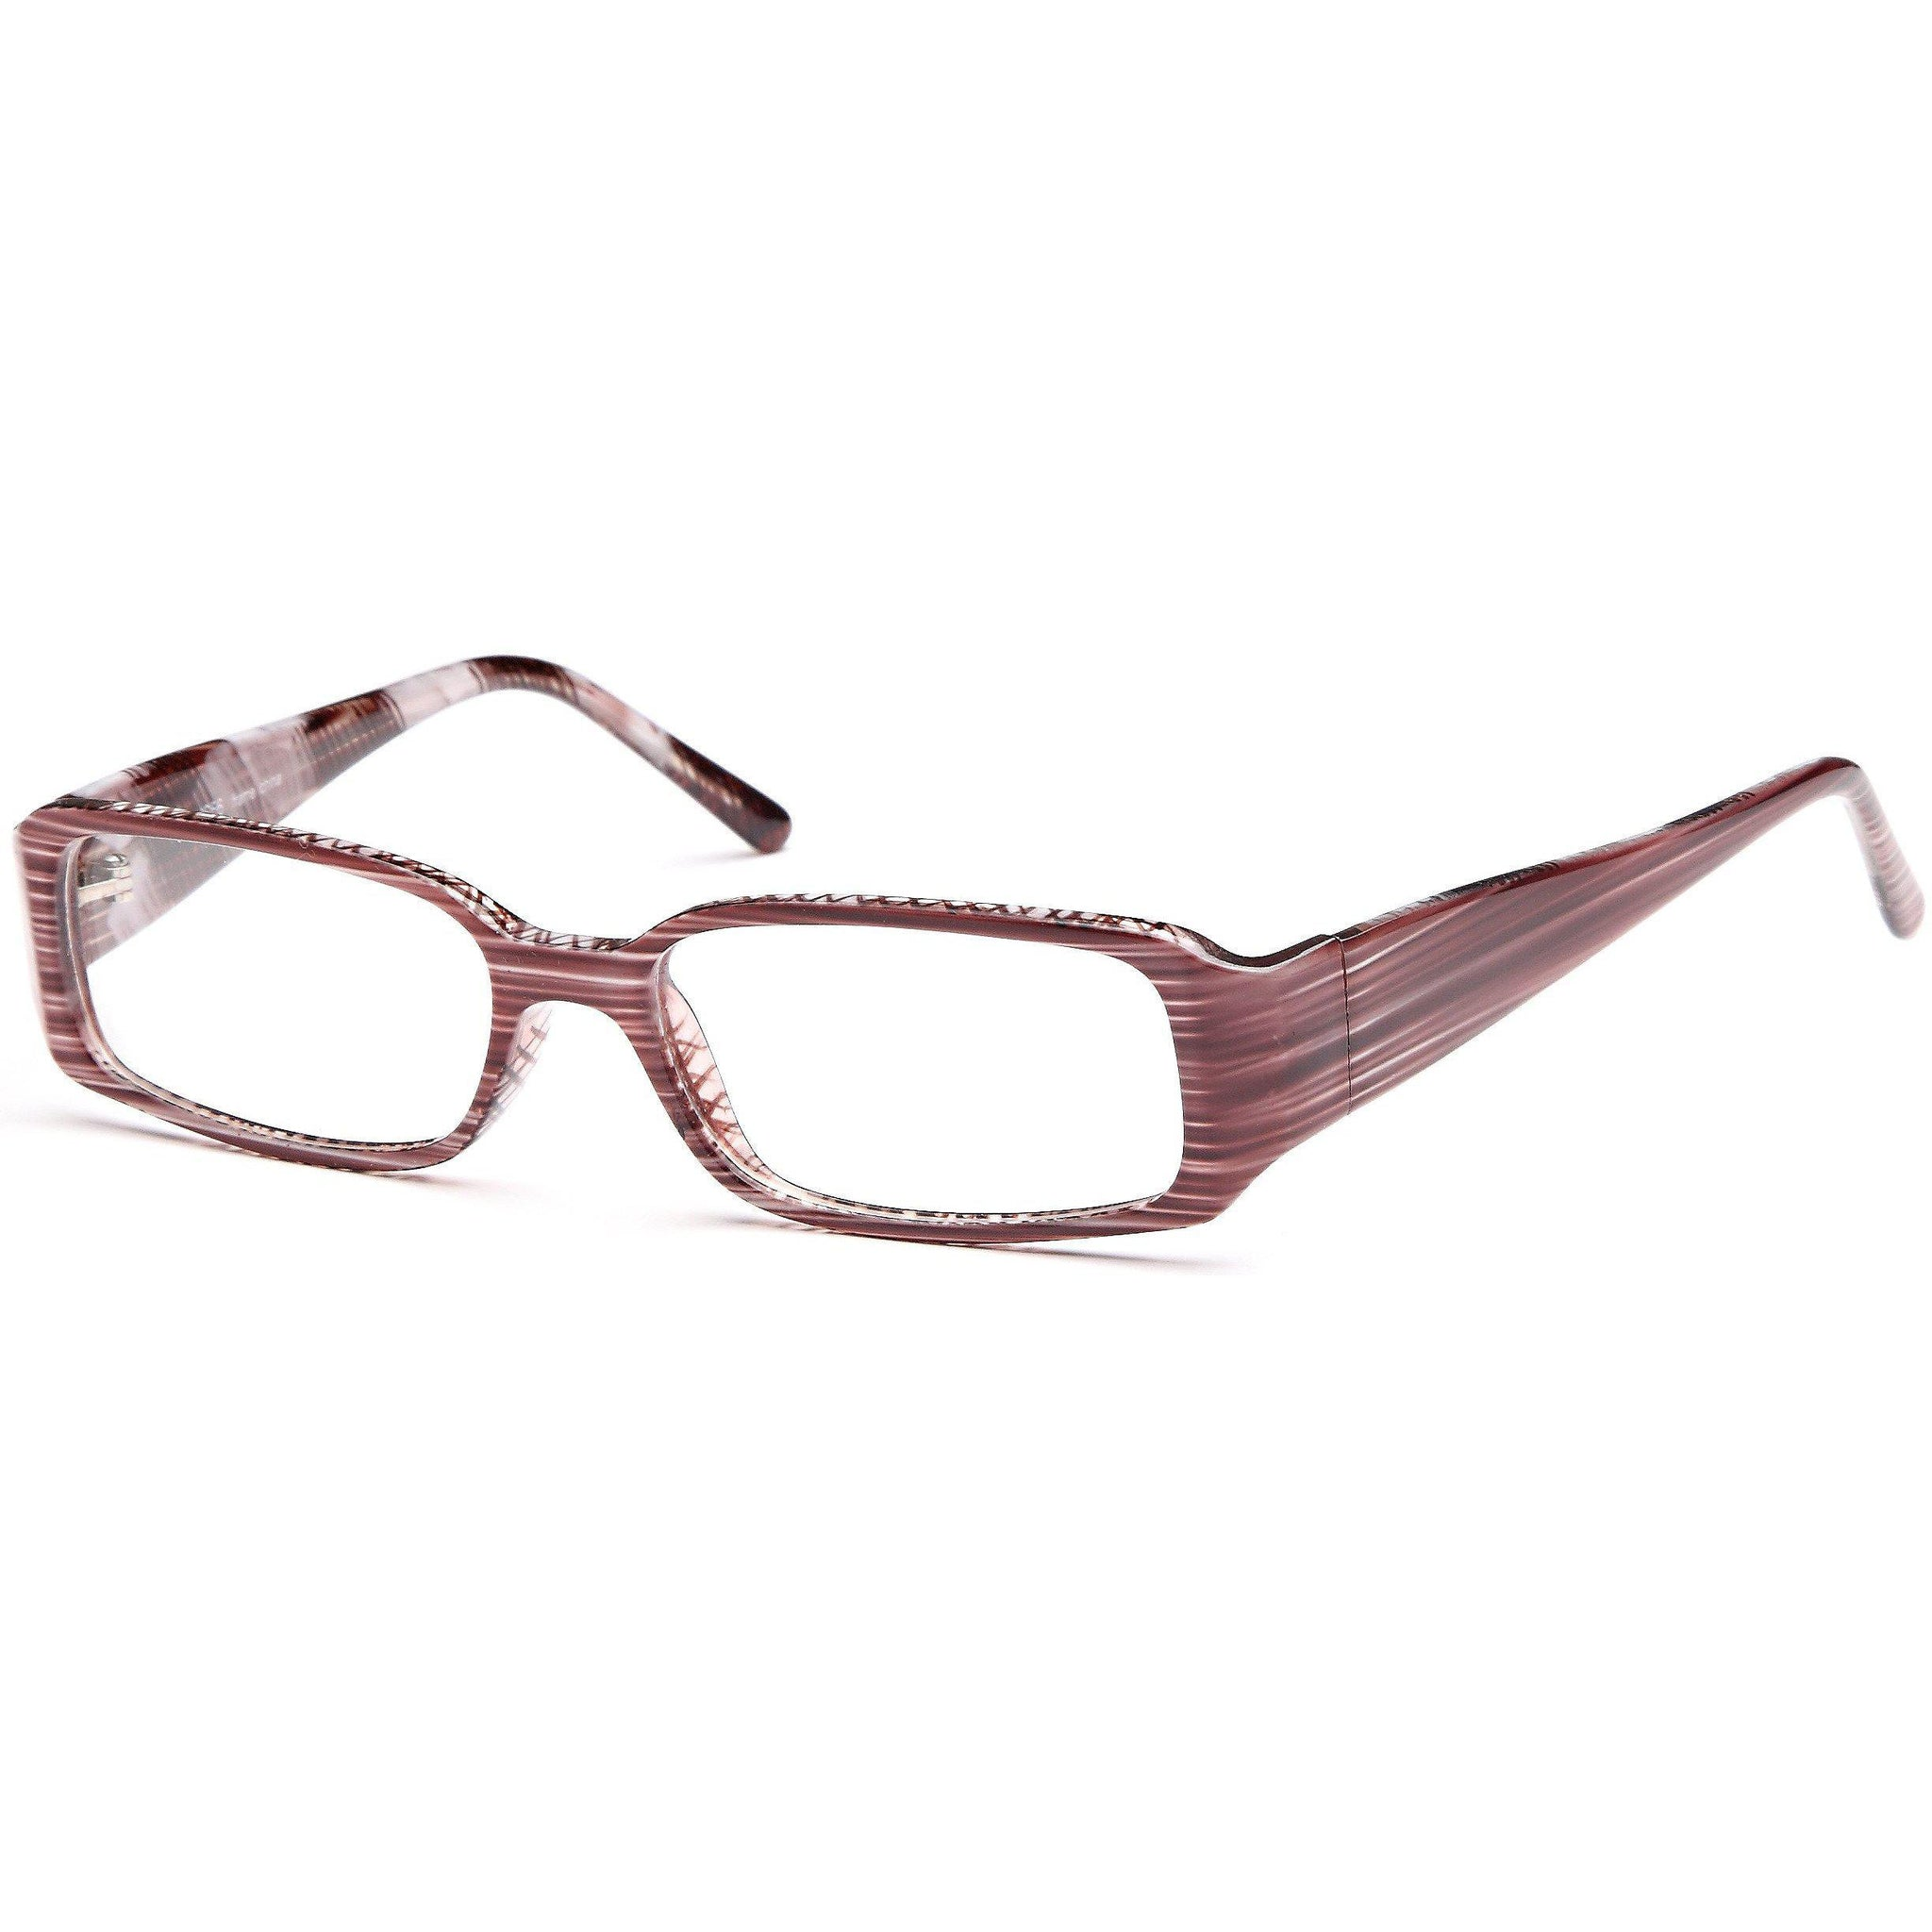 4U Prescription Glasses US 56 Optical Eyeglasses Frame - timetoshade